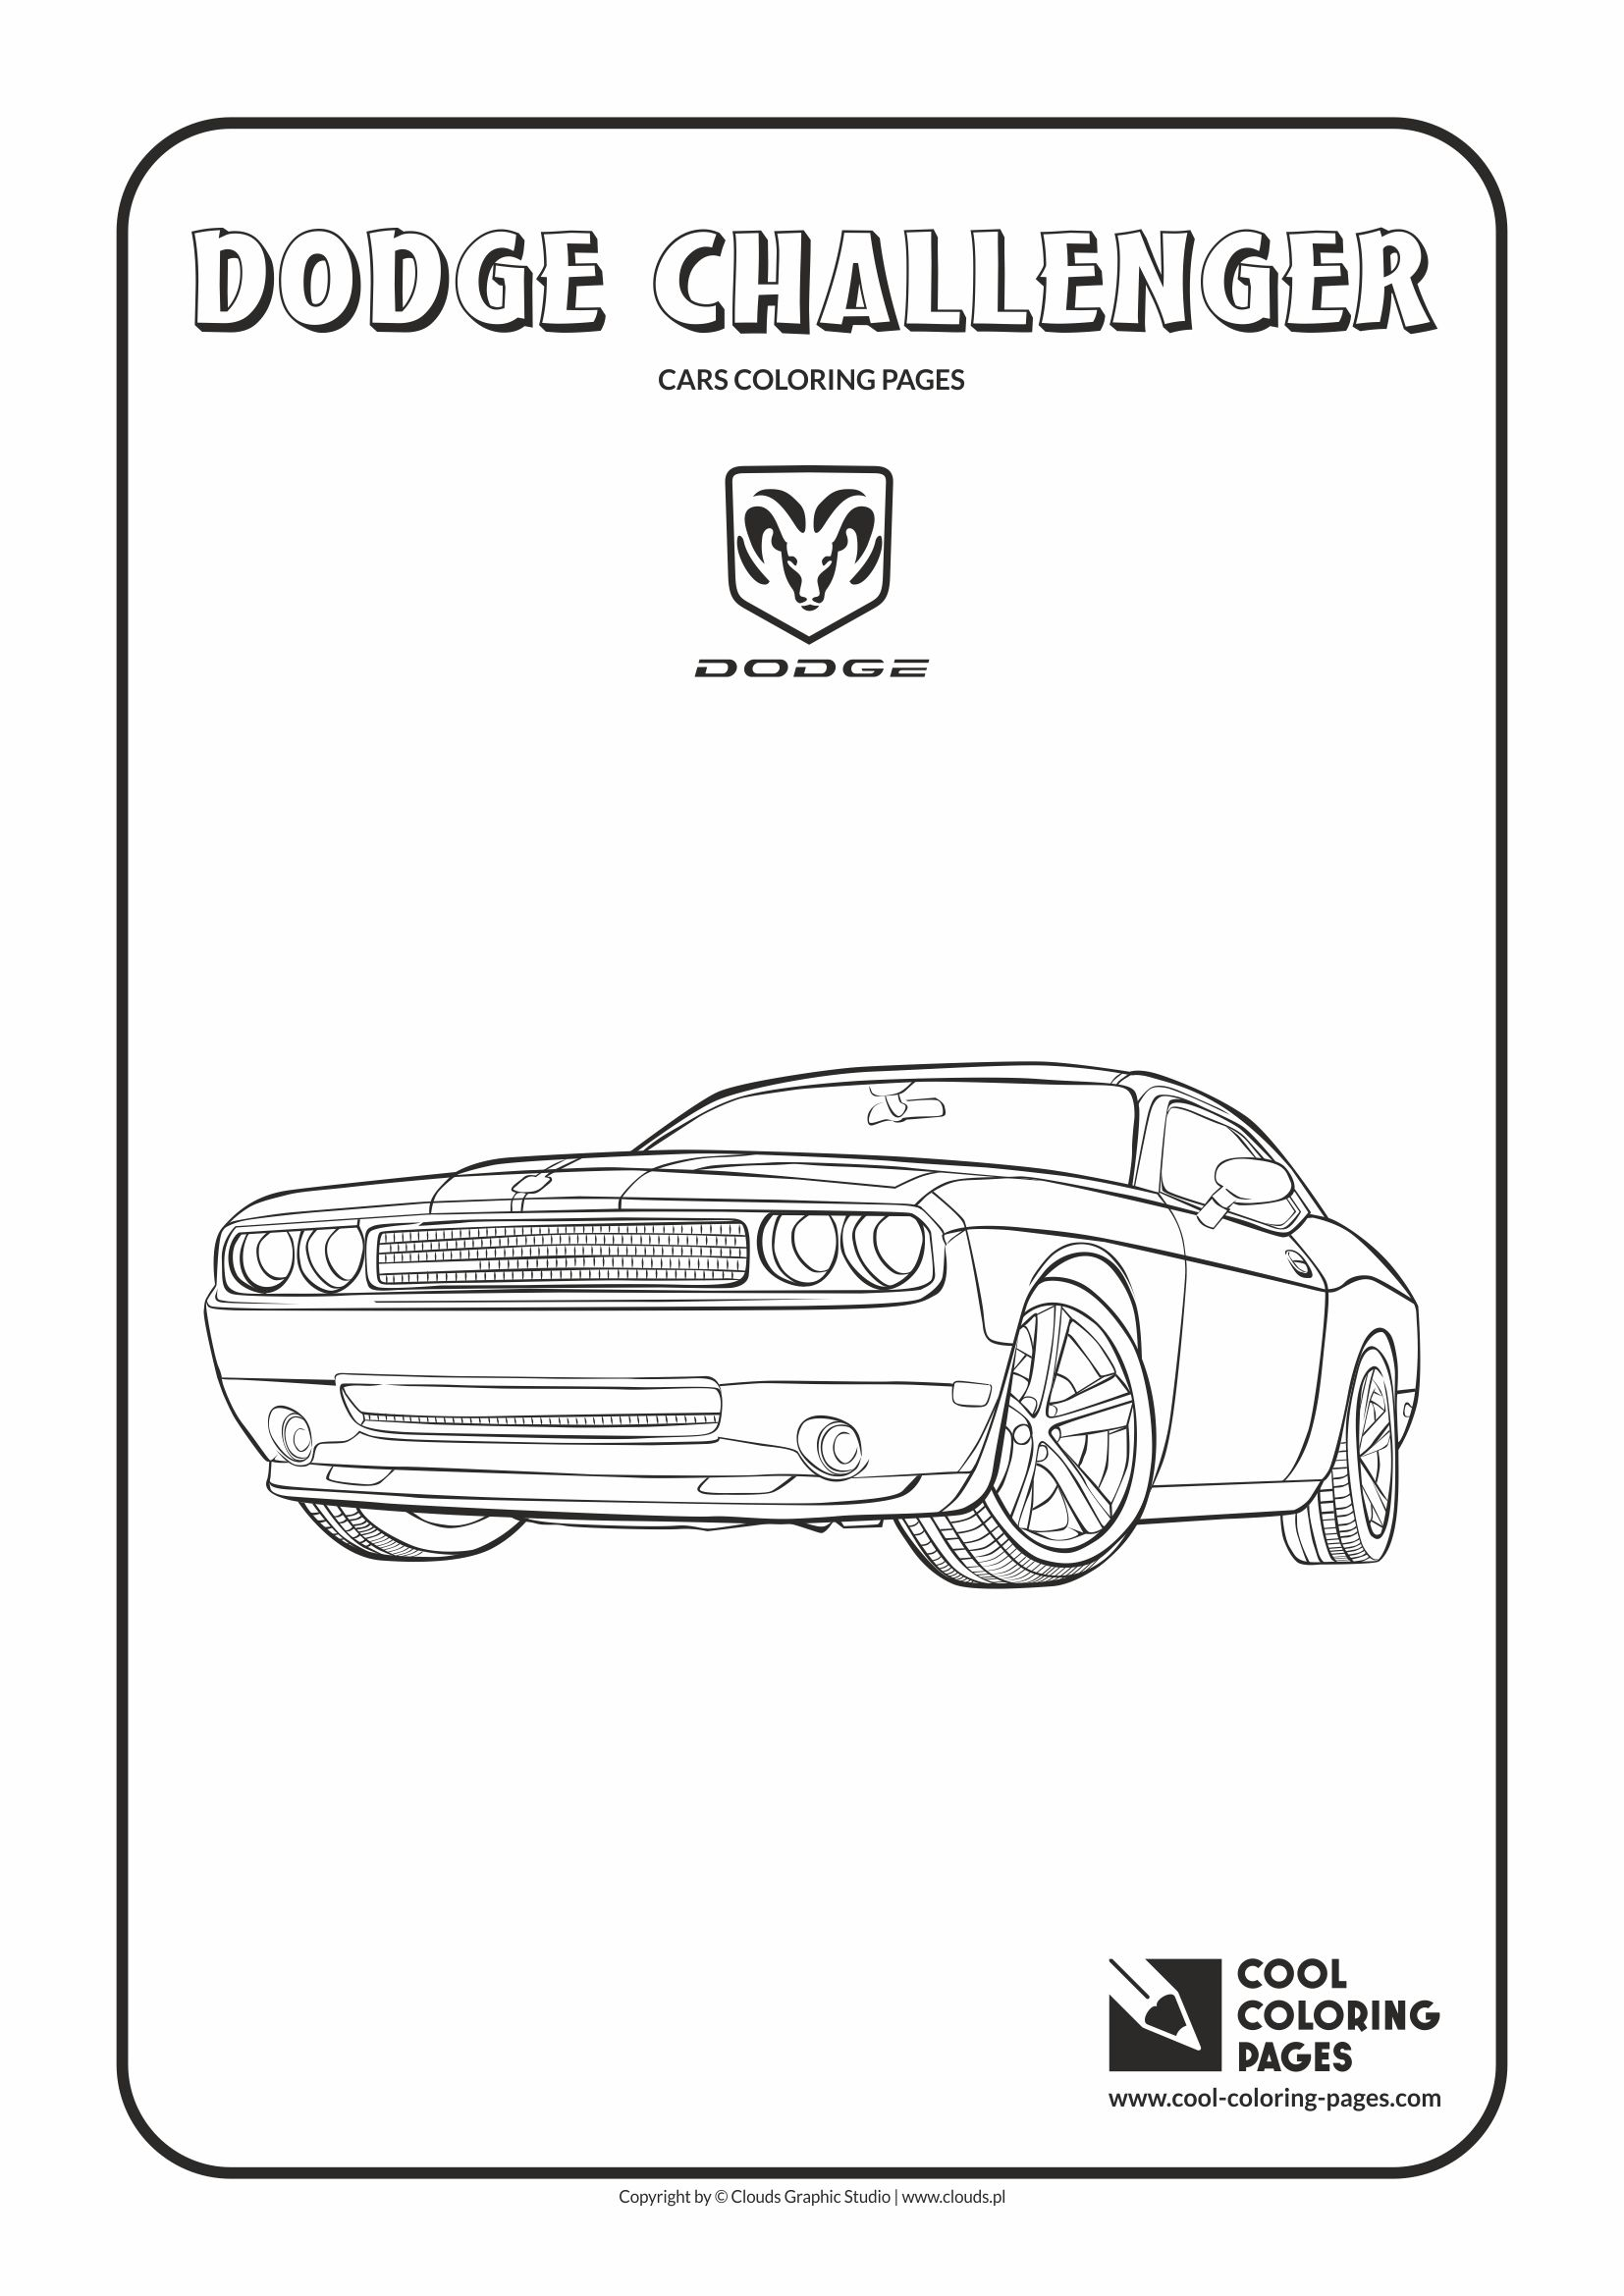 Dodge Challenger Coloring Page Cool Coloring Pages